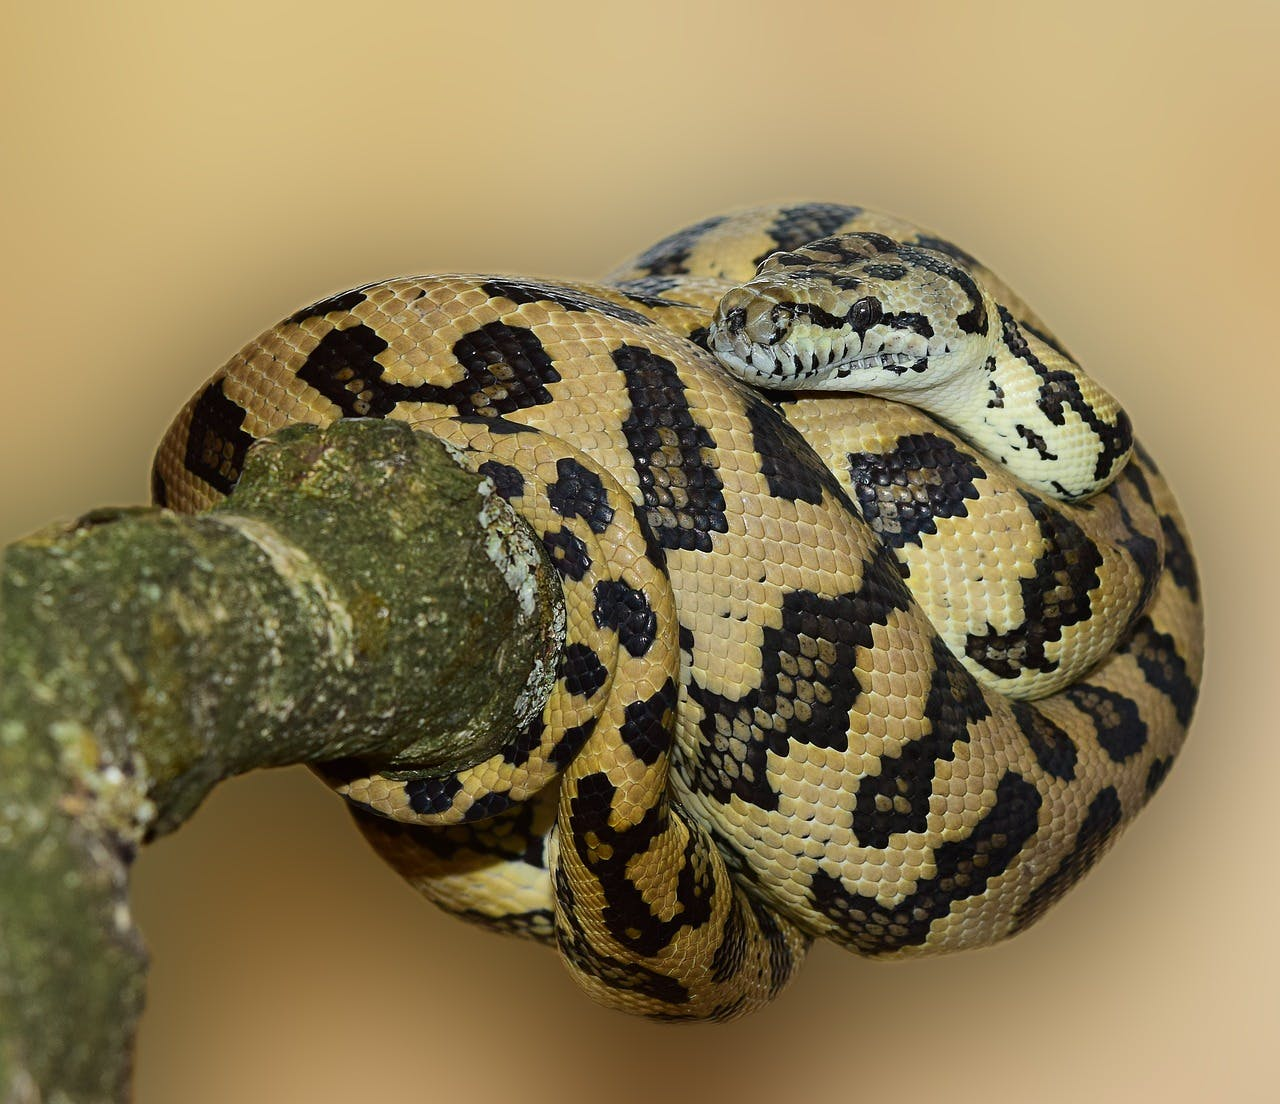 a black and yellow patterned python